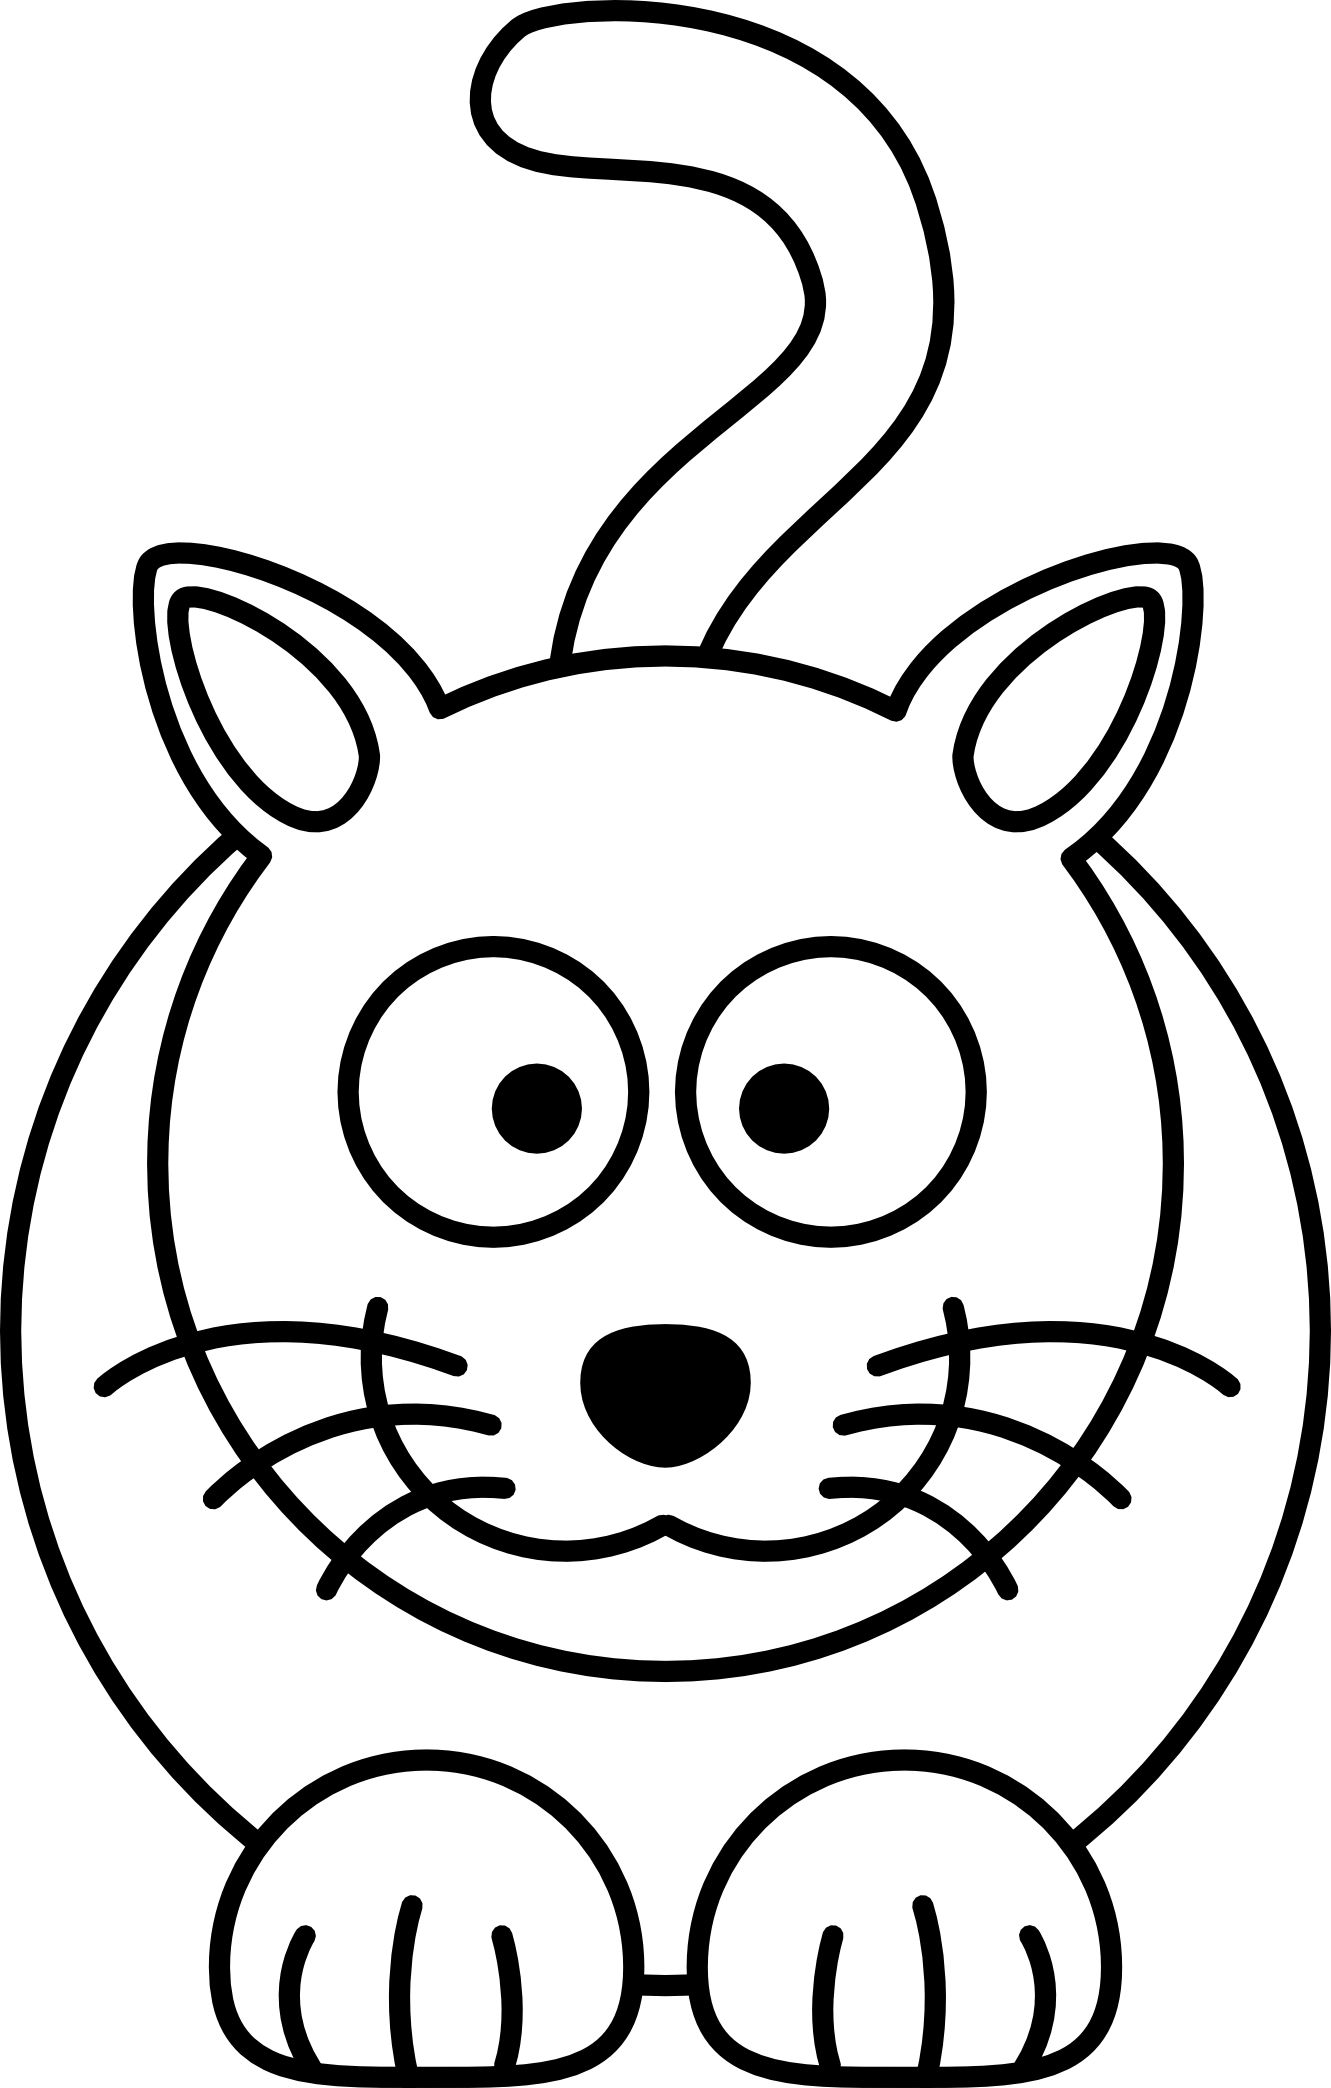 Free black and white pete the cat clipart svg royalty free stock Animated Cat Drawing at GetDrawings.com | Free for personal use ... svg royalty free stock